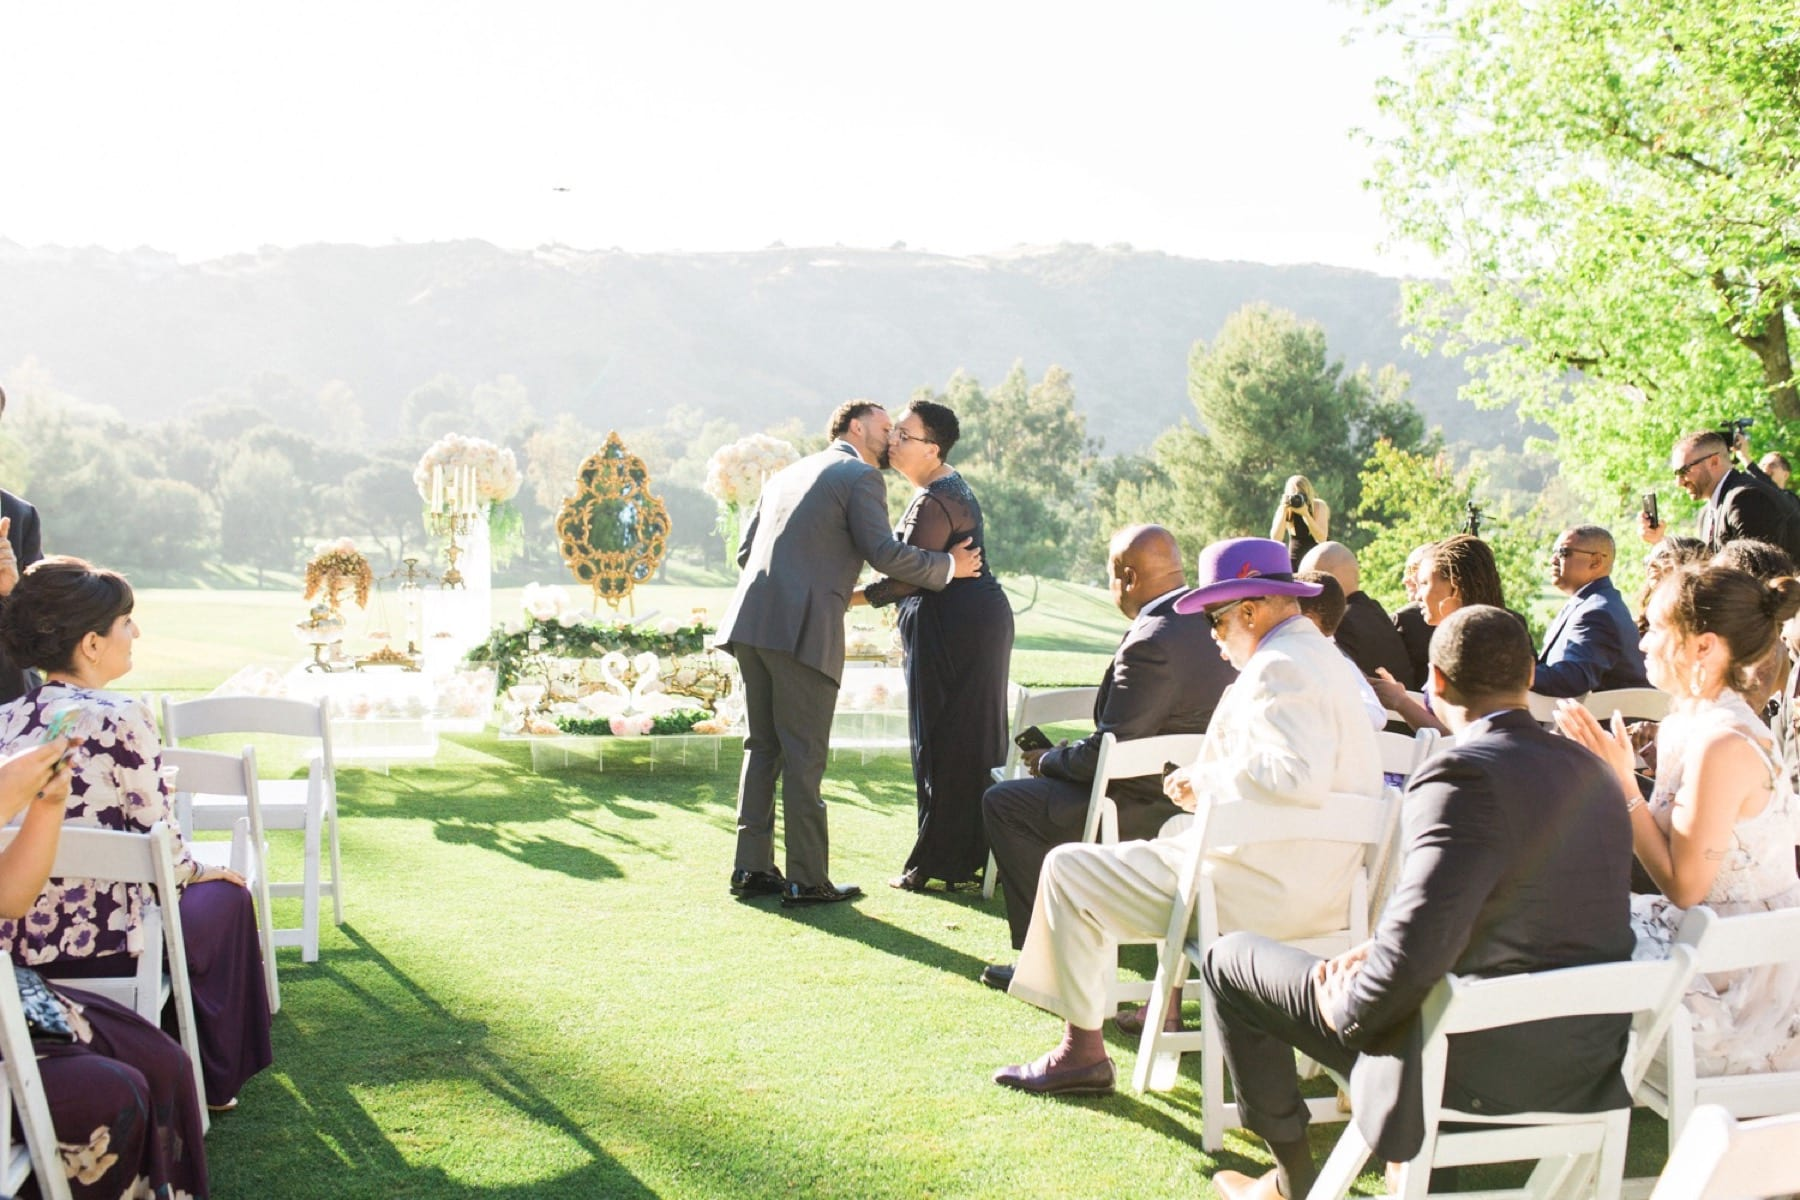 Mountaingate Country Club Persian Wedding, Persian Wedding in LA, Persian Wedding in Beverley Hills, Country Club wedding venues in LA, Southern California Persian Wedding, Persian Wedding ideas, Persian Wedding inspiration, Santa Barbara wedding photographer, Santa Barbara persian wedding, Southern California wedding photographer, wedding photographer in Central California, Central California wedding photographer, Country Club wedding Santa Barbara